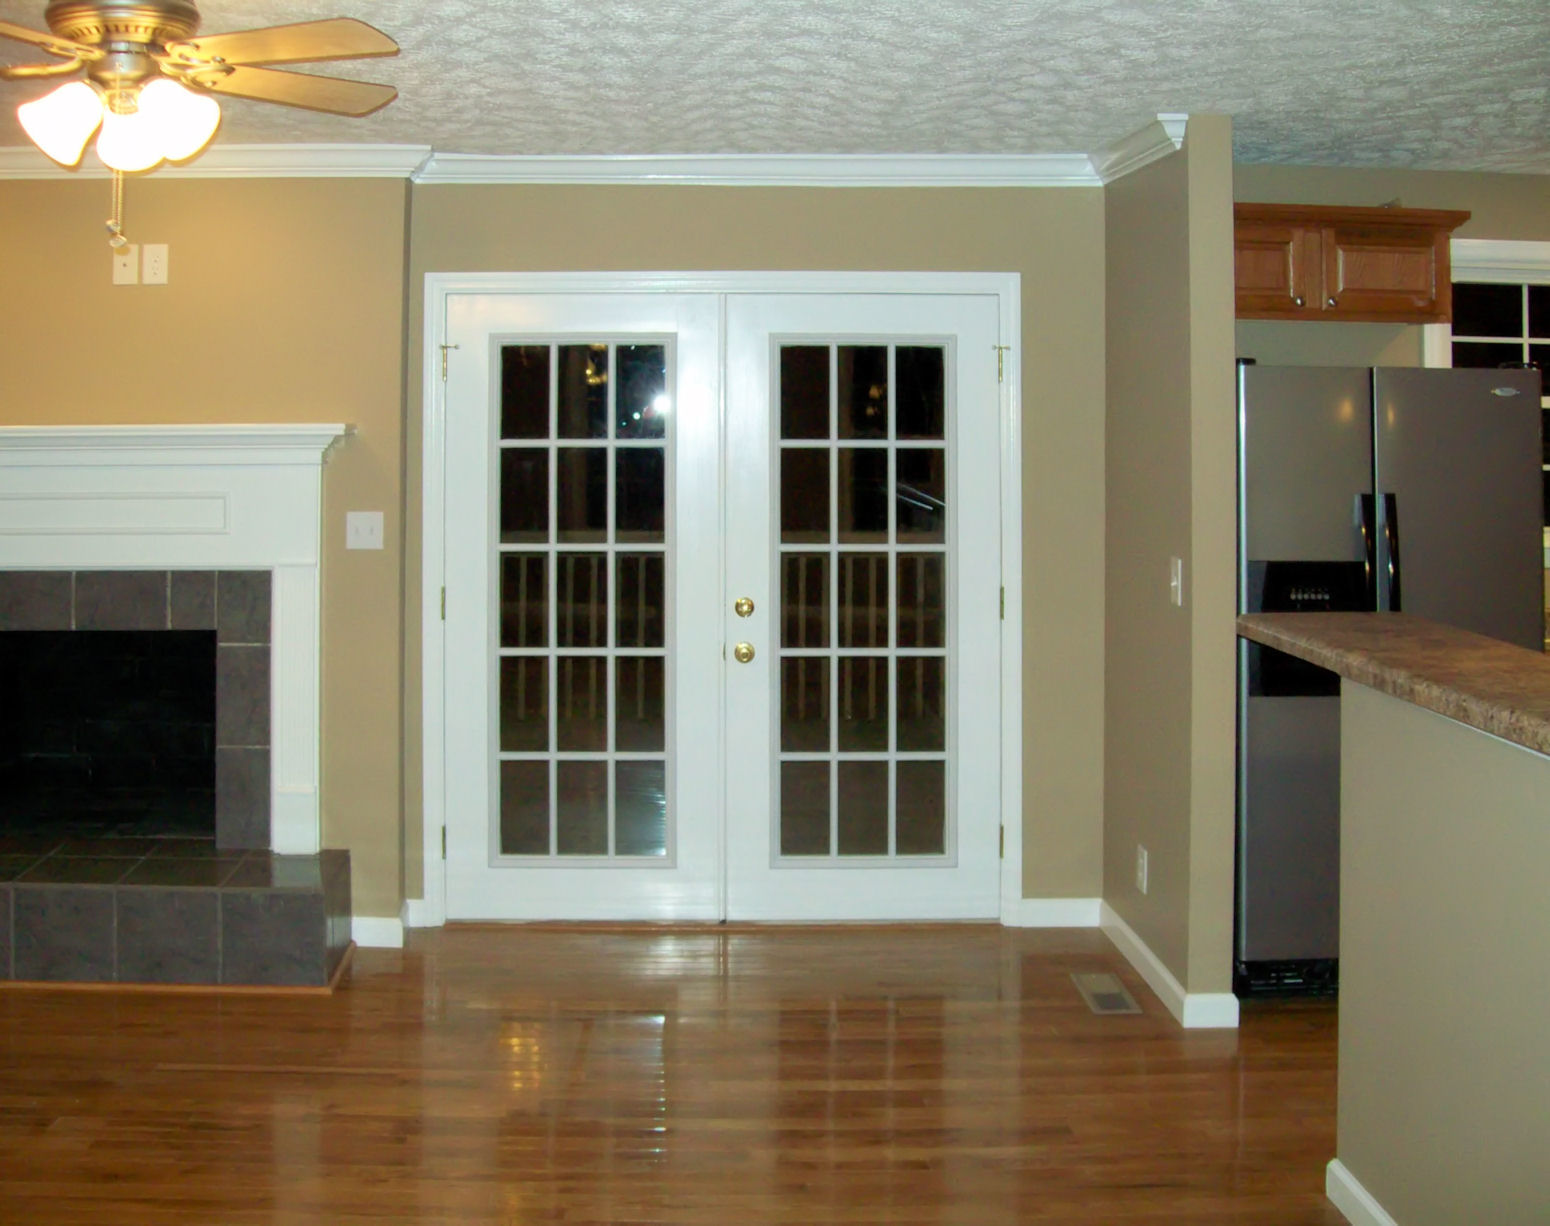 Classic french door near the cozy fireplace